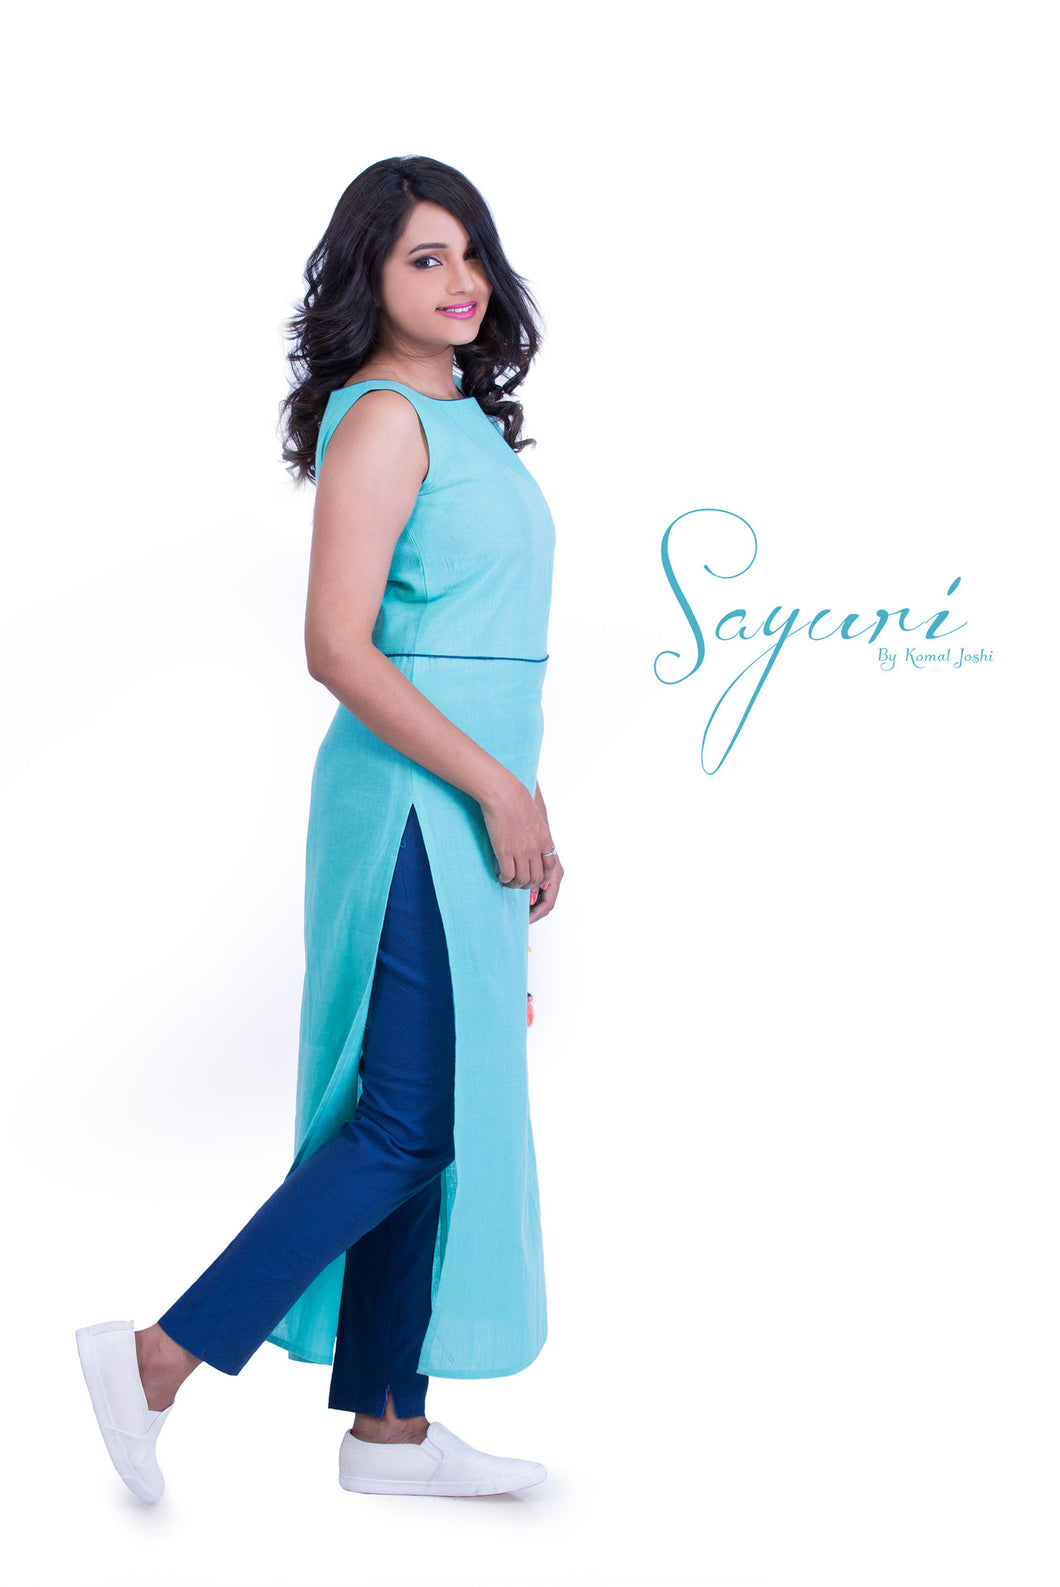 Skyblue cotton linen long dress